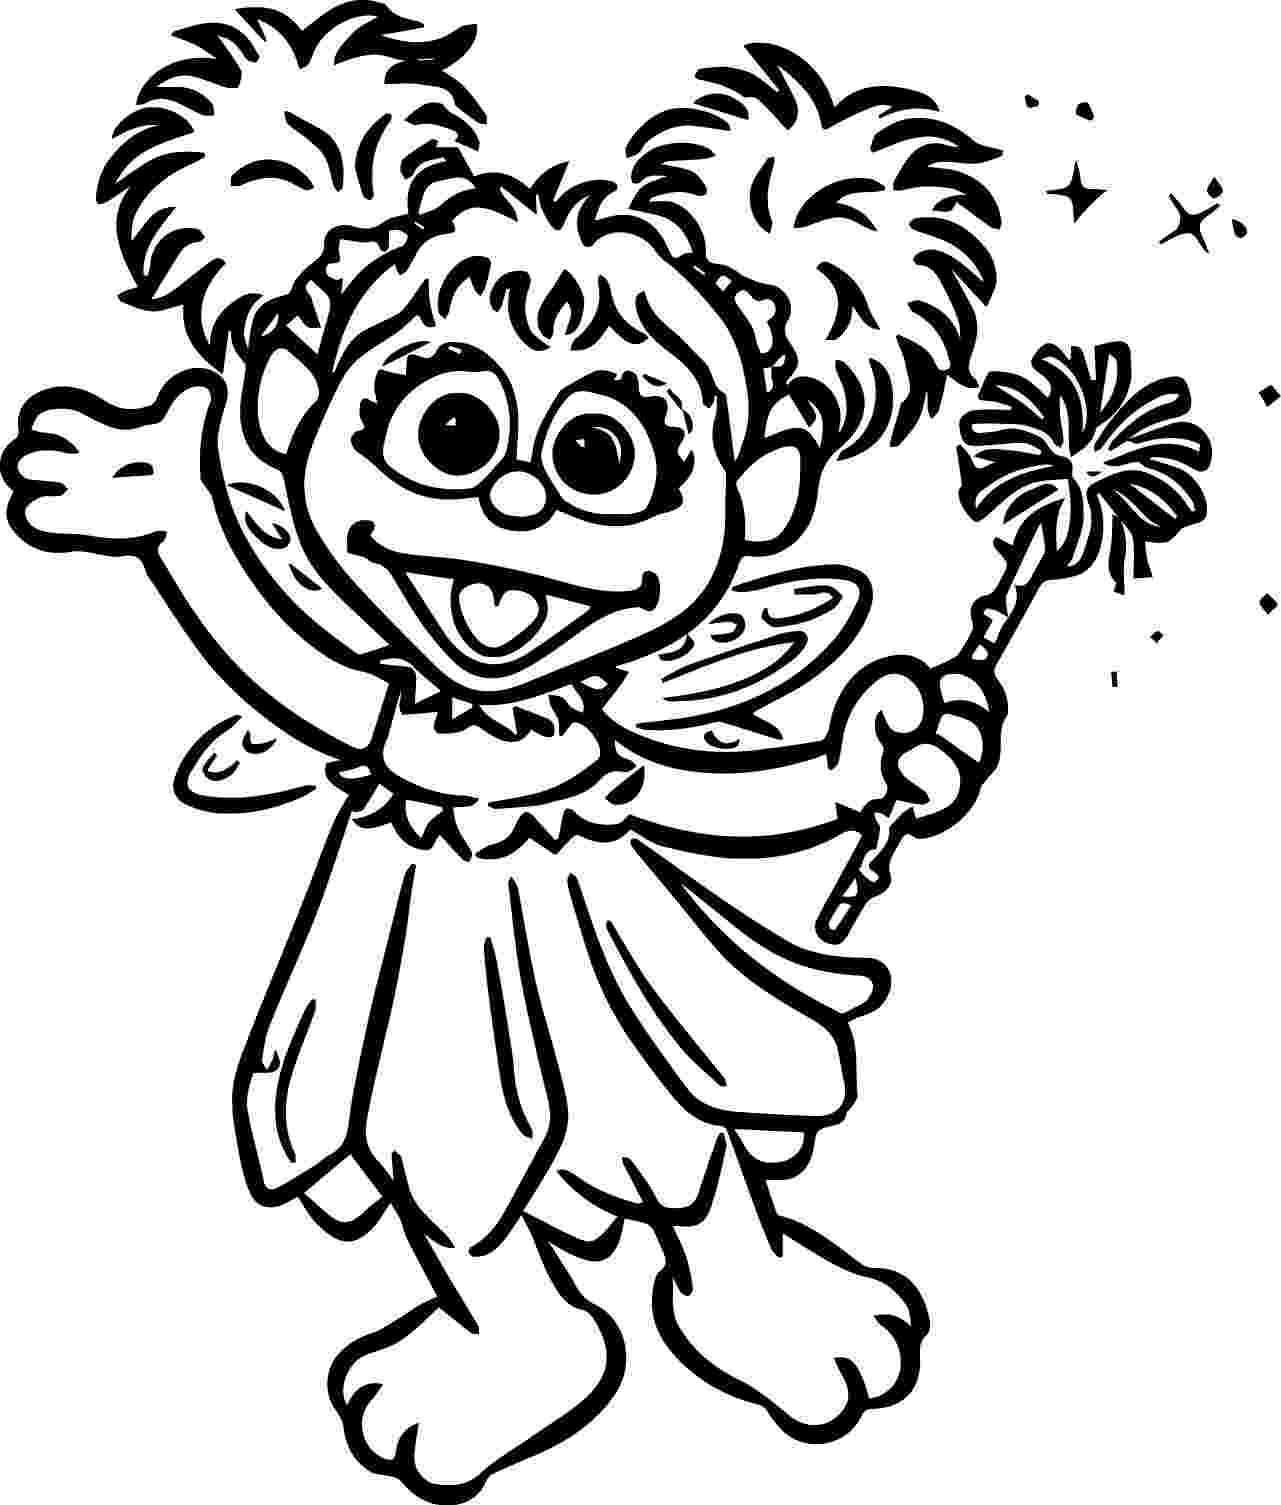 abby cadabby coloring pages super diaper baby coloring pages top free printable pages abby cadabby coloring